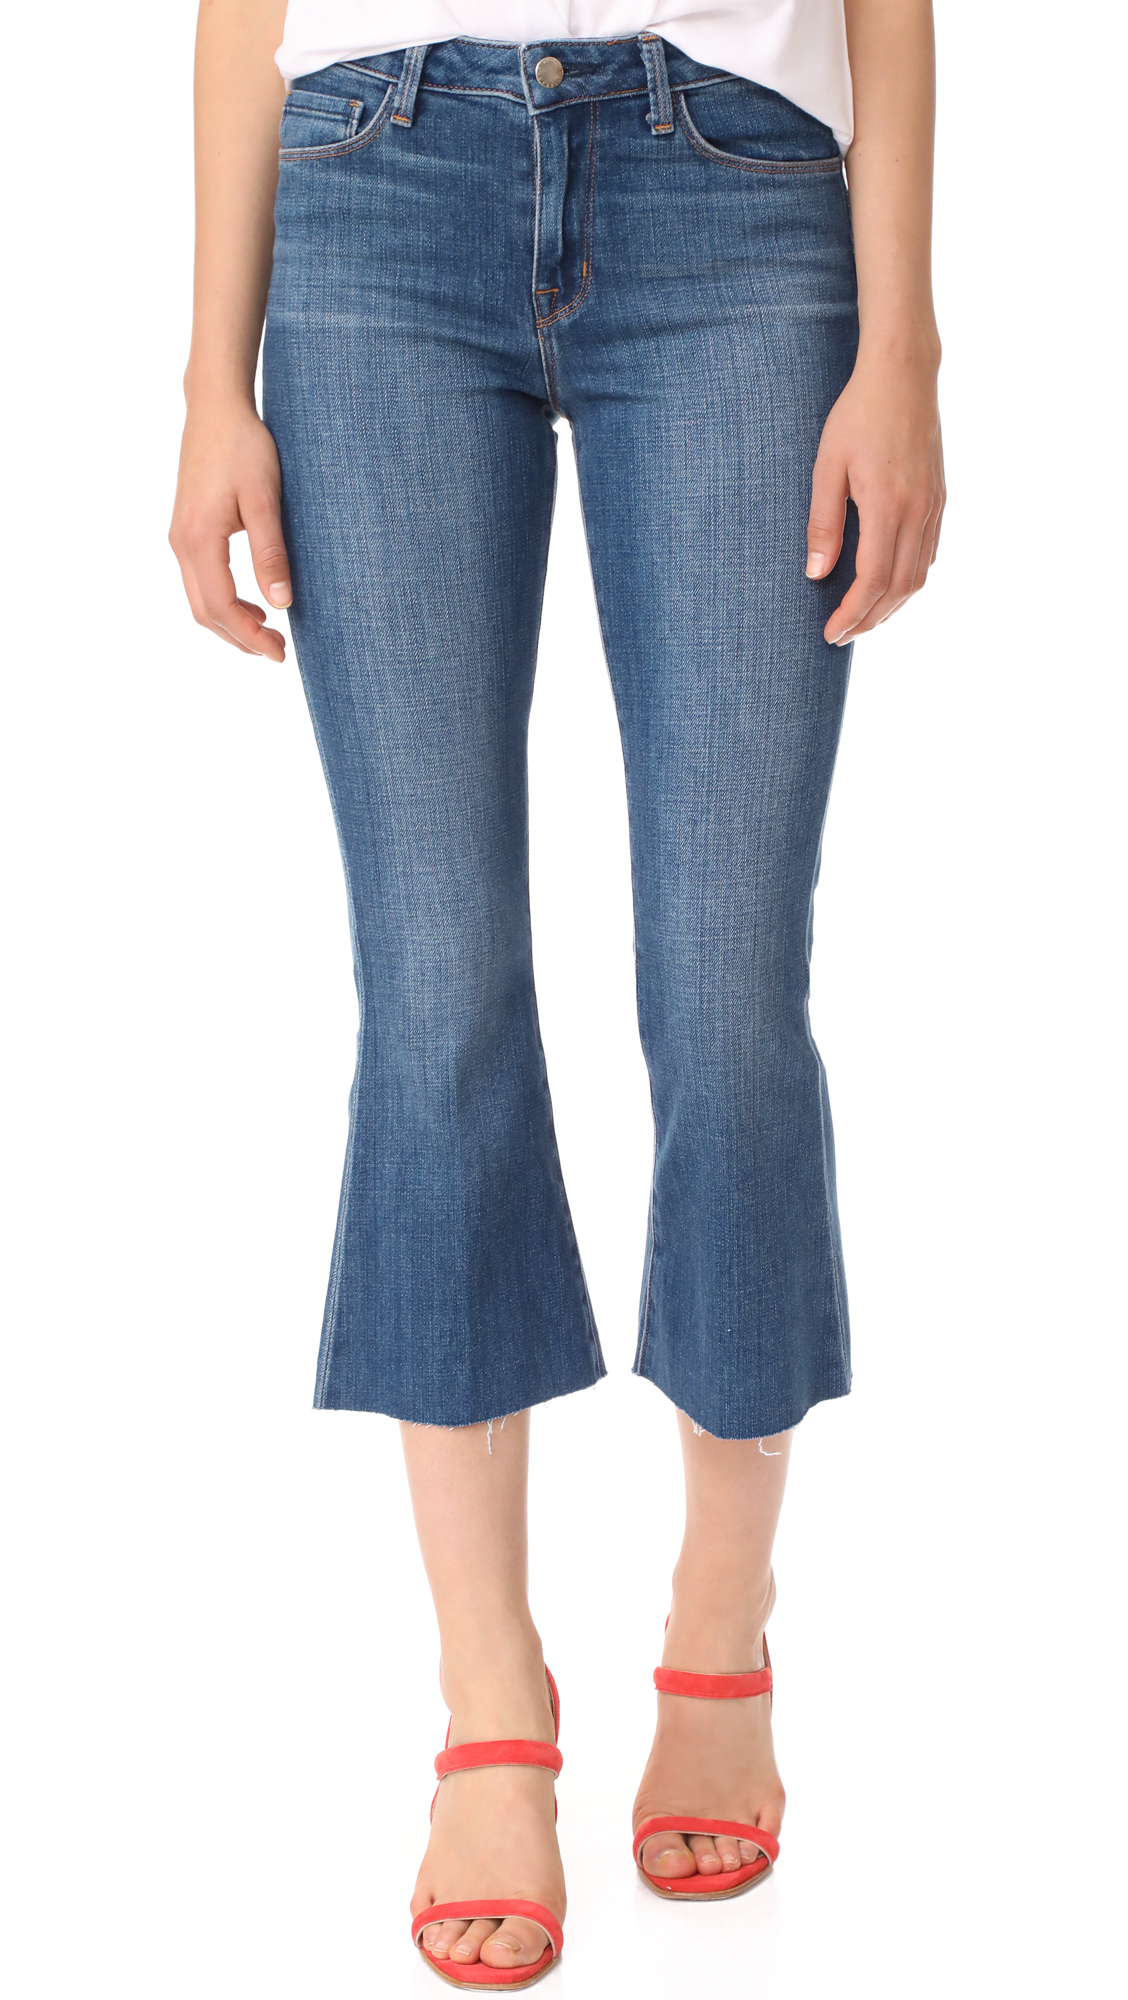 LAGENCE Sophia High Rise Crop Jeans - Authentique